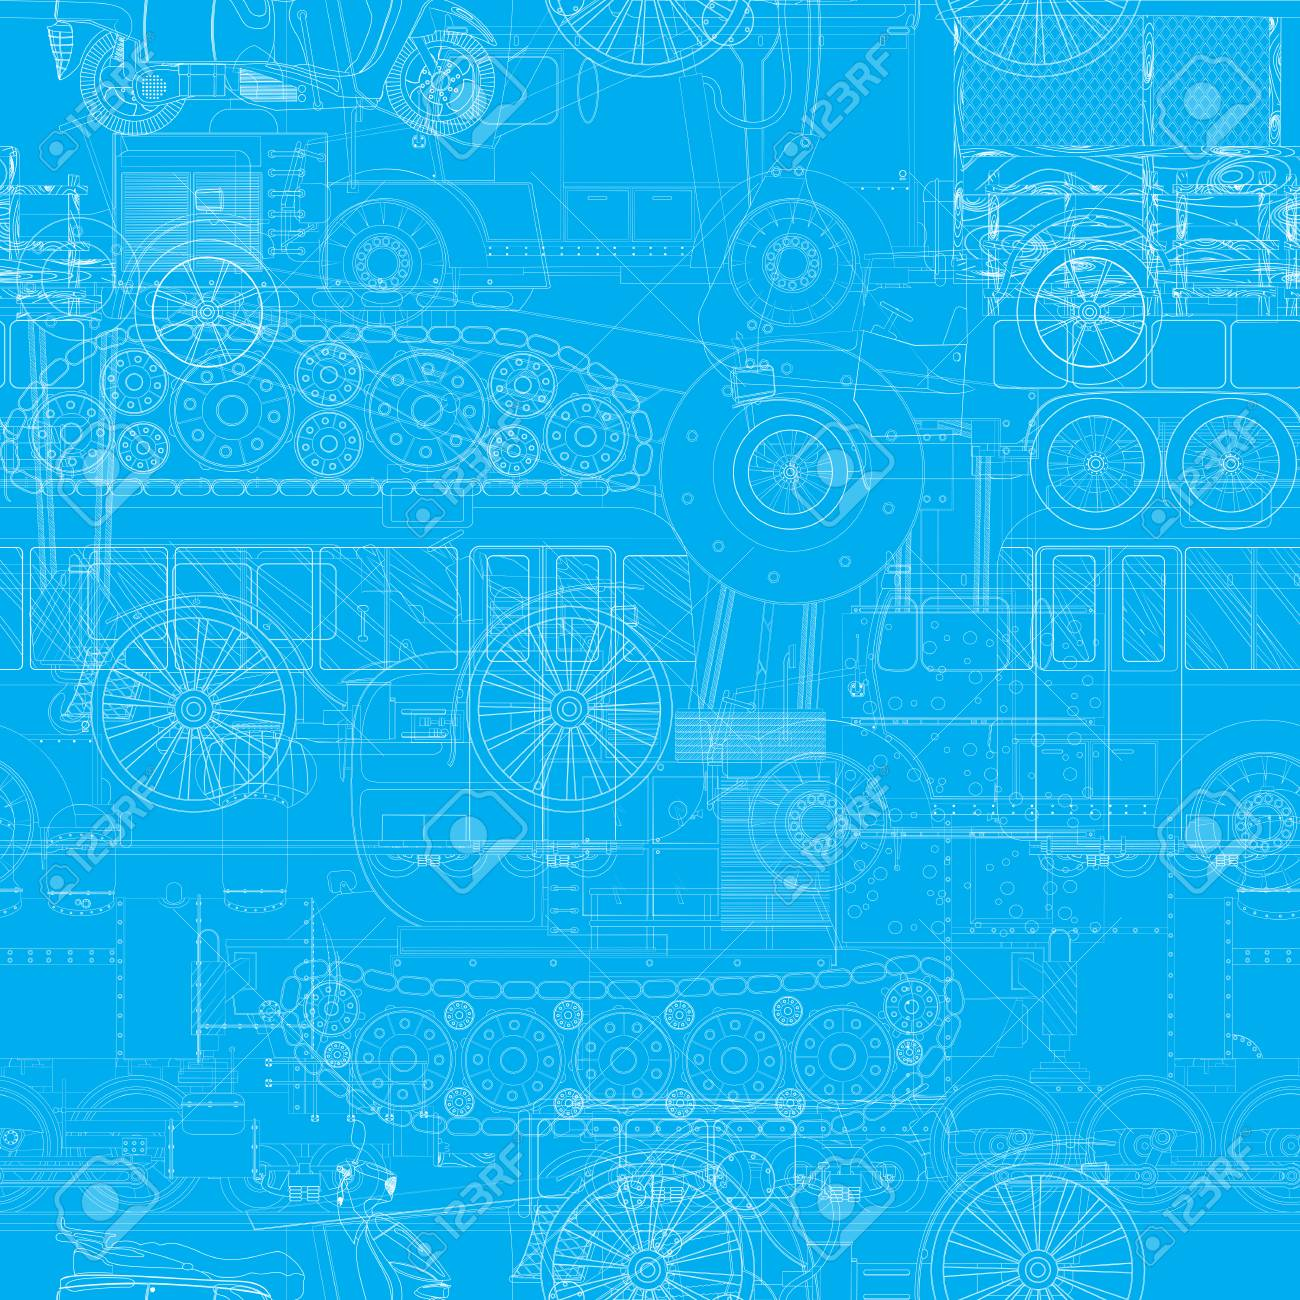 Seamless blueprint pattern with vehicles machines royalty free seamless blueprint pattern with vehicles machines stock vector 77995492 malvernweather Gallery